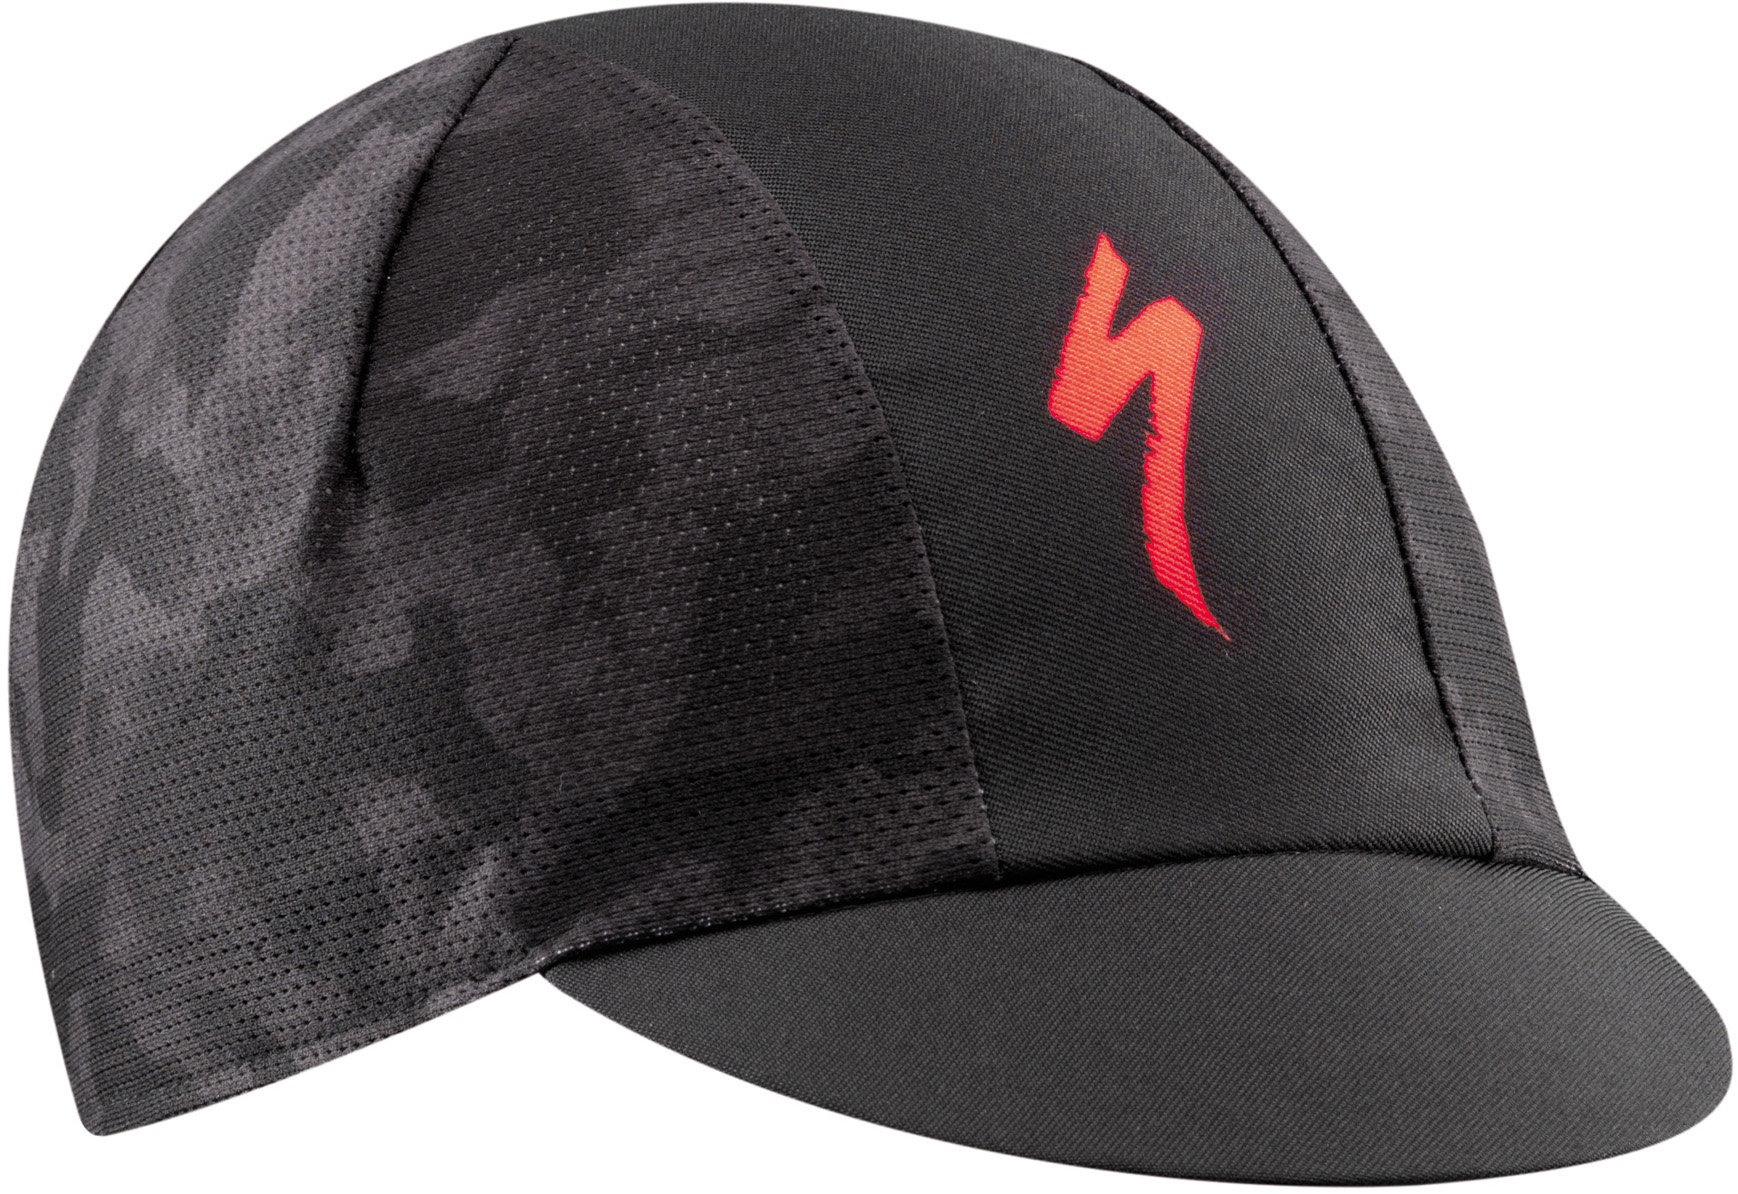 Charcoal/Rocket Red Camo